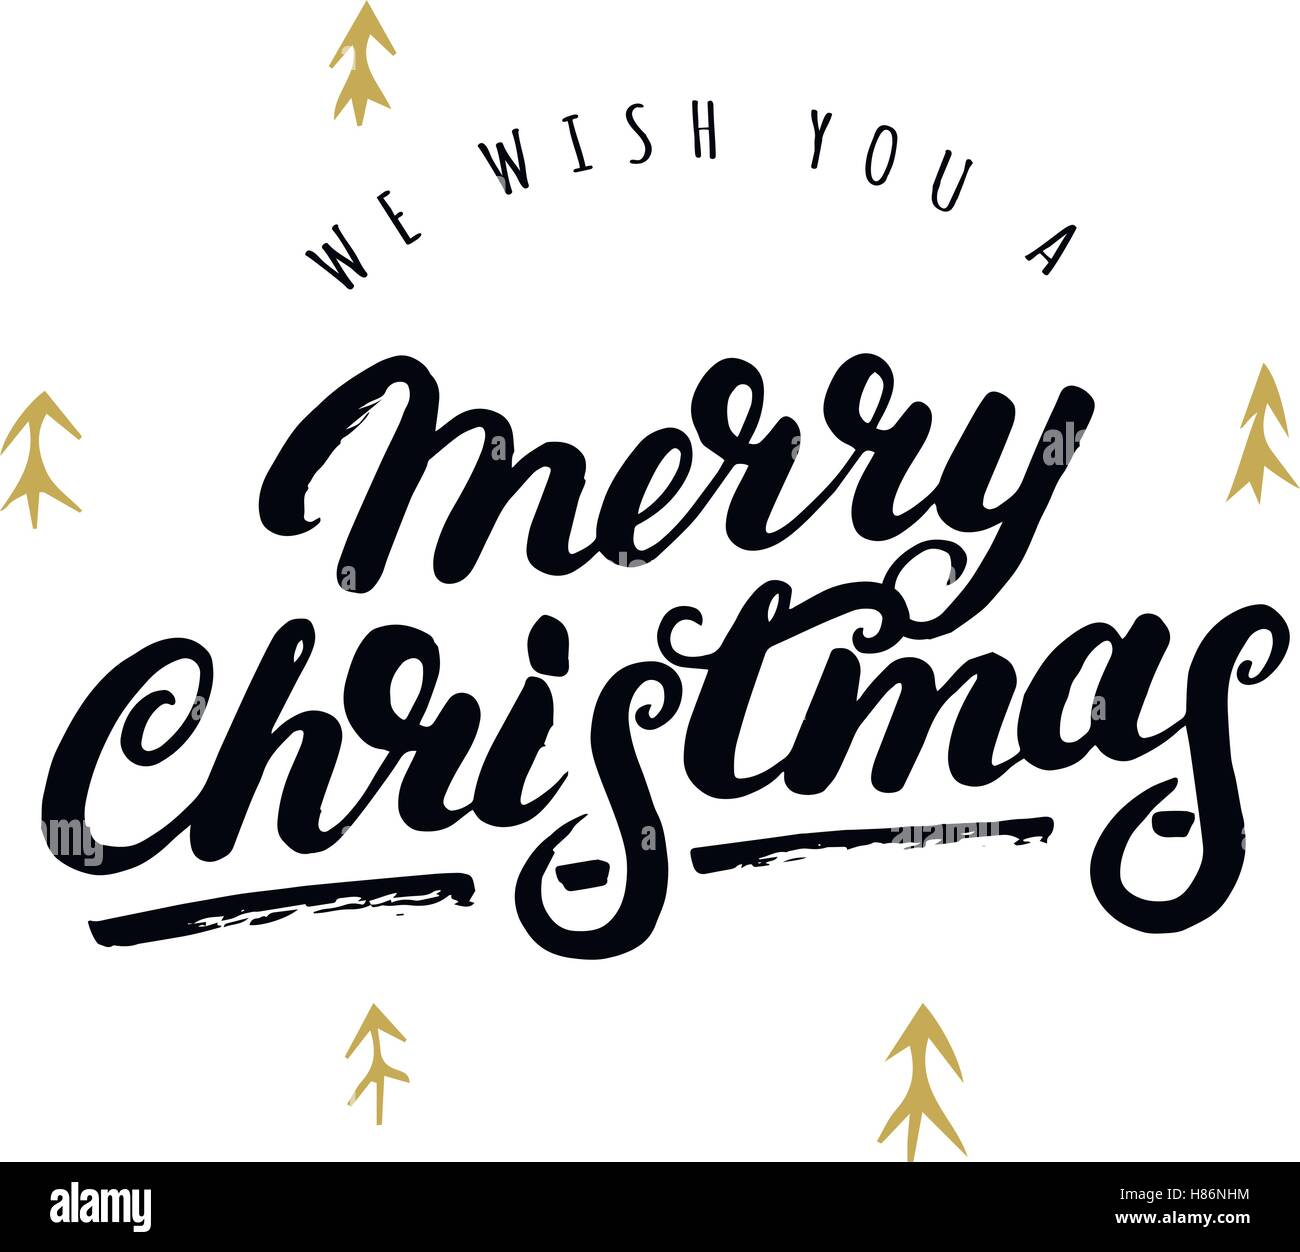 We Wish You A Merry Christmas Hand Written Lettering With